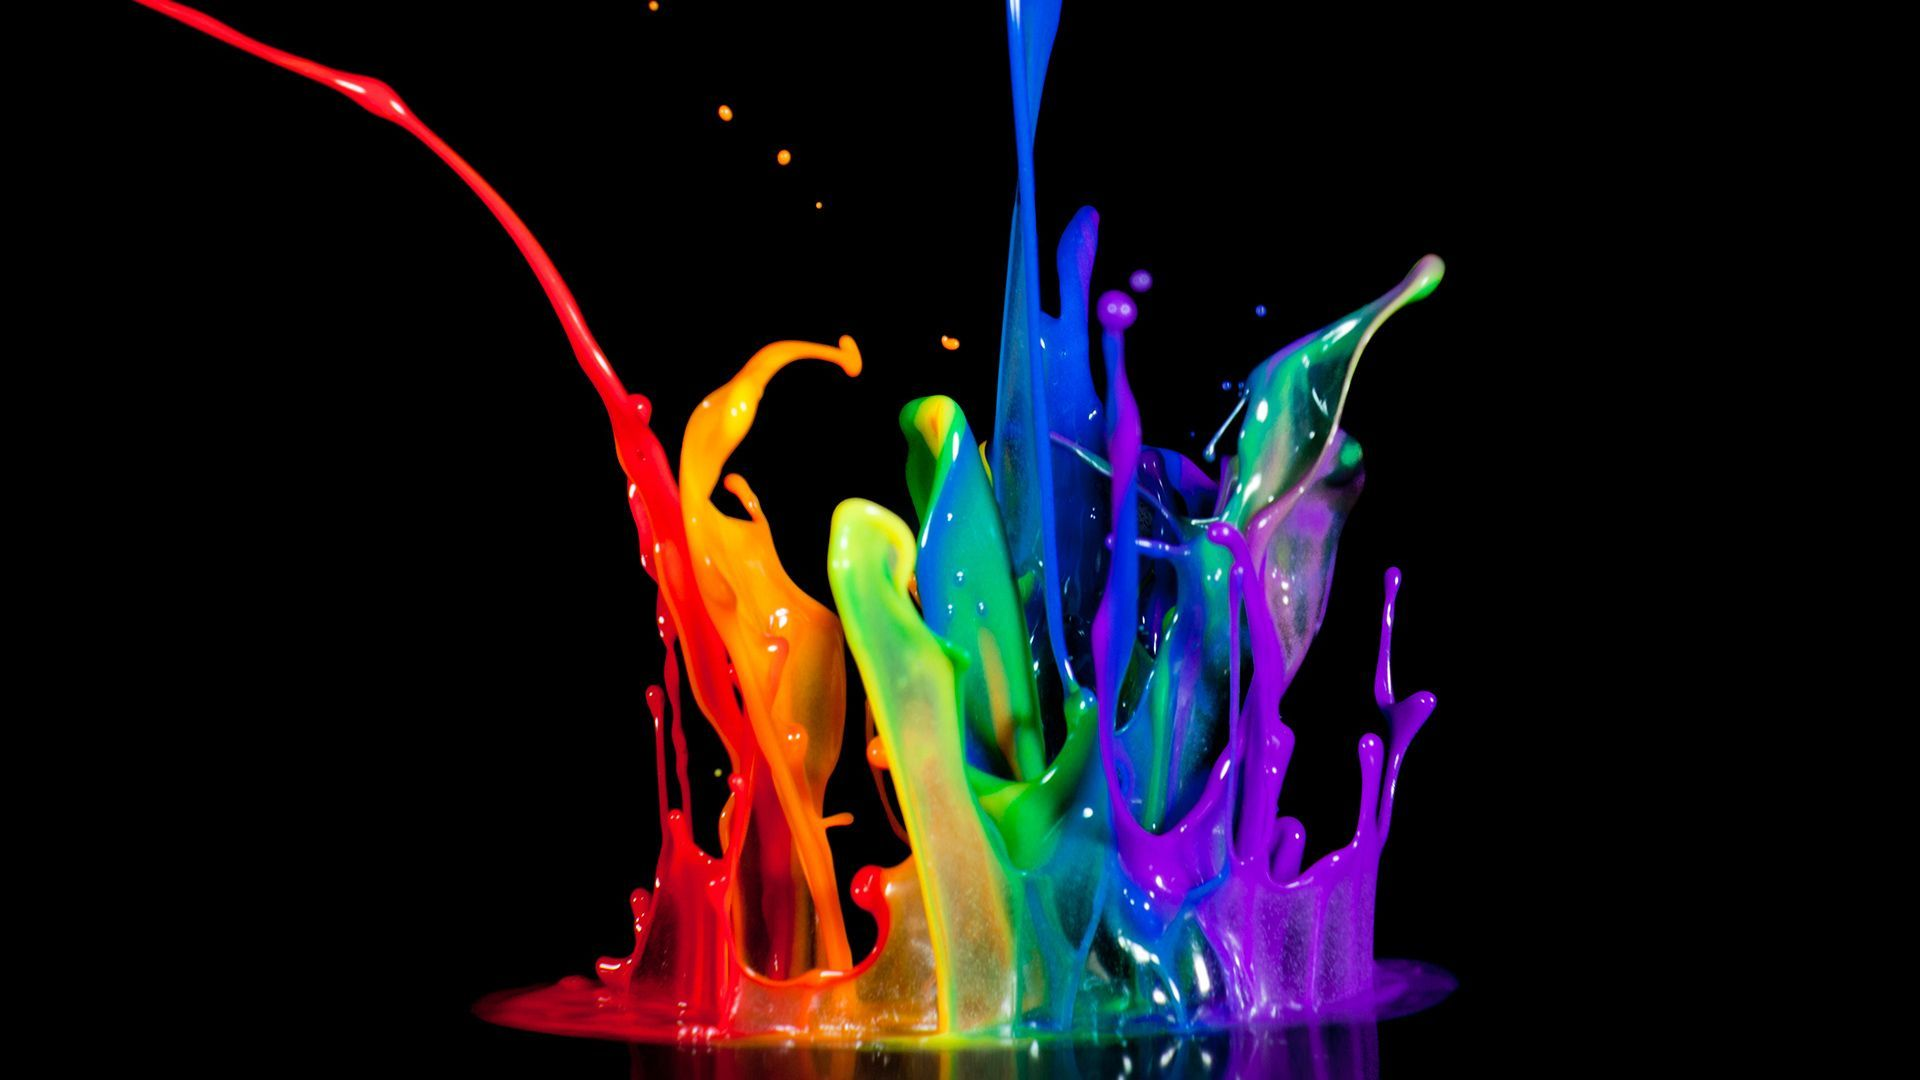 Cool Paint Splash